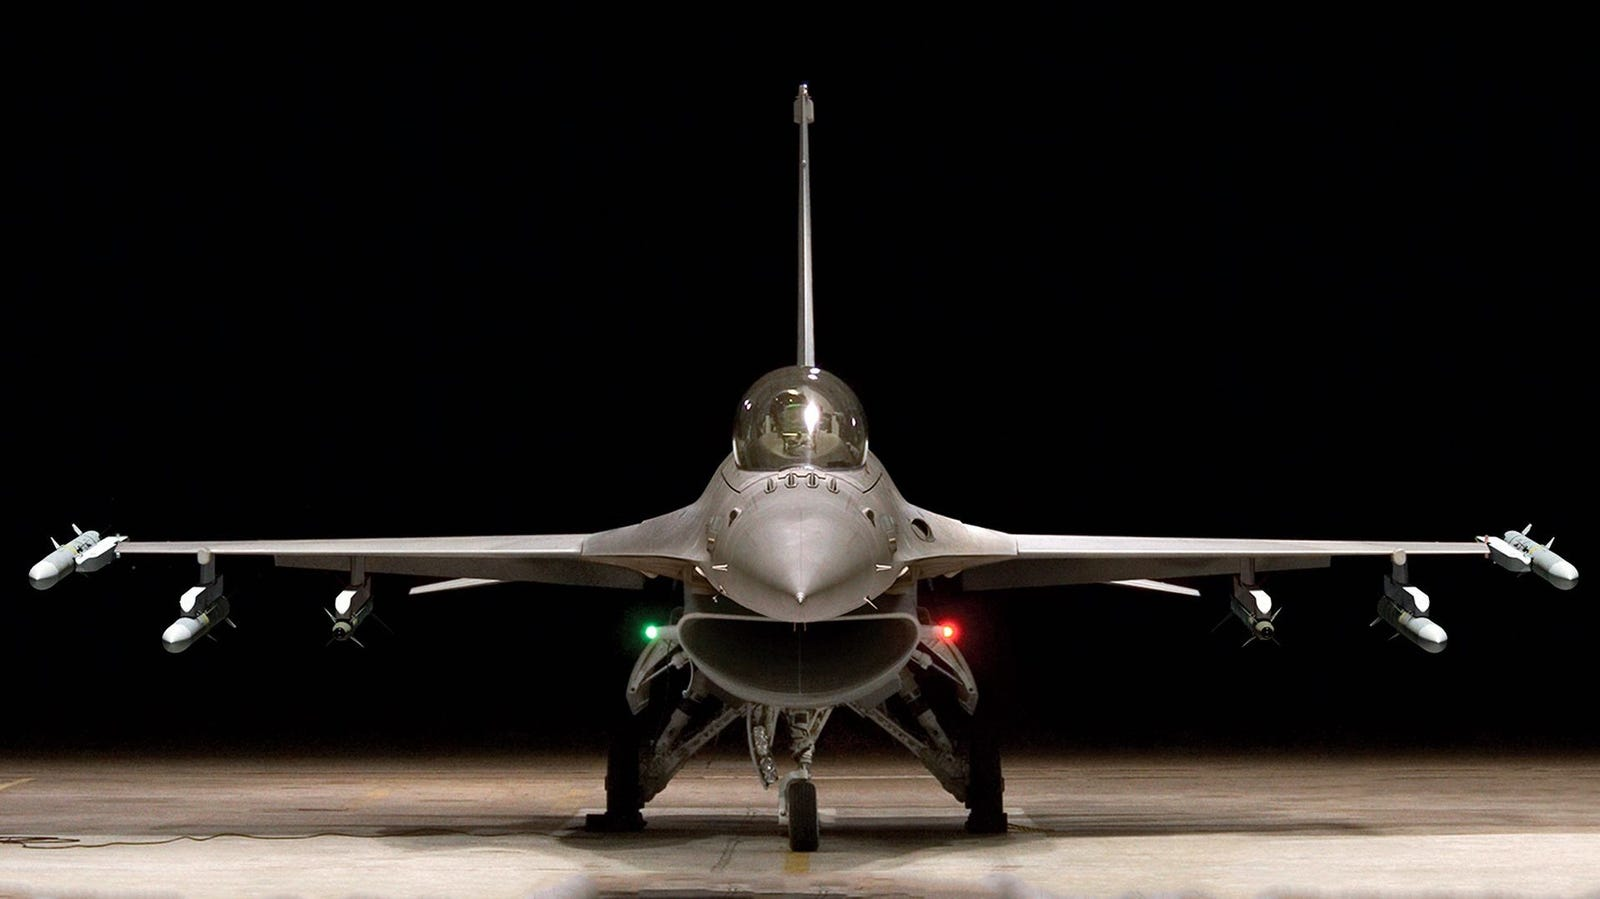 A similar jet to the one that's being advertised.